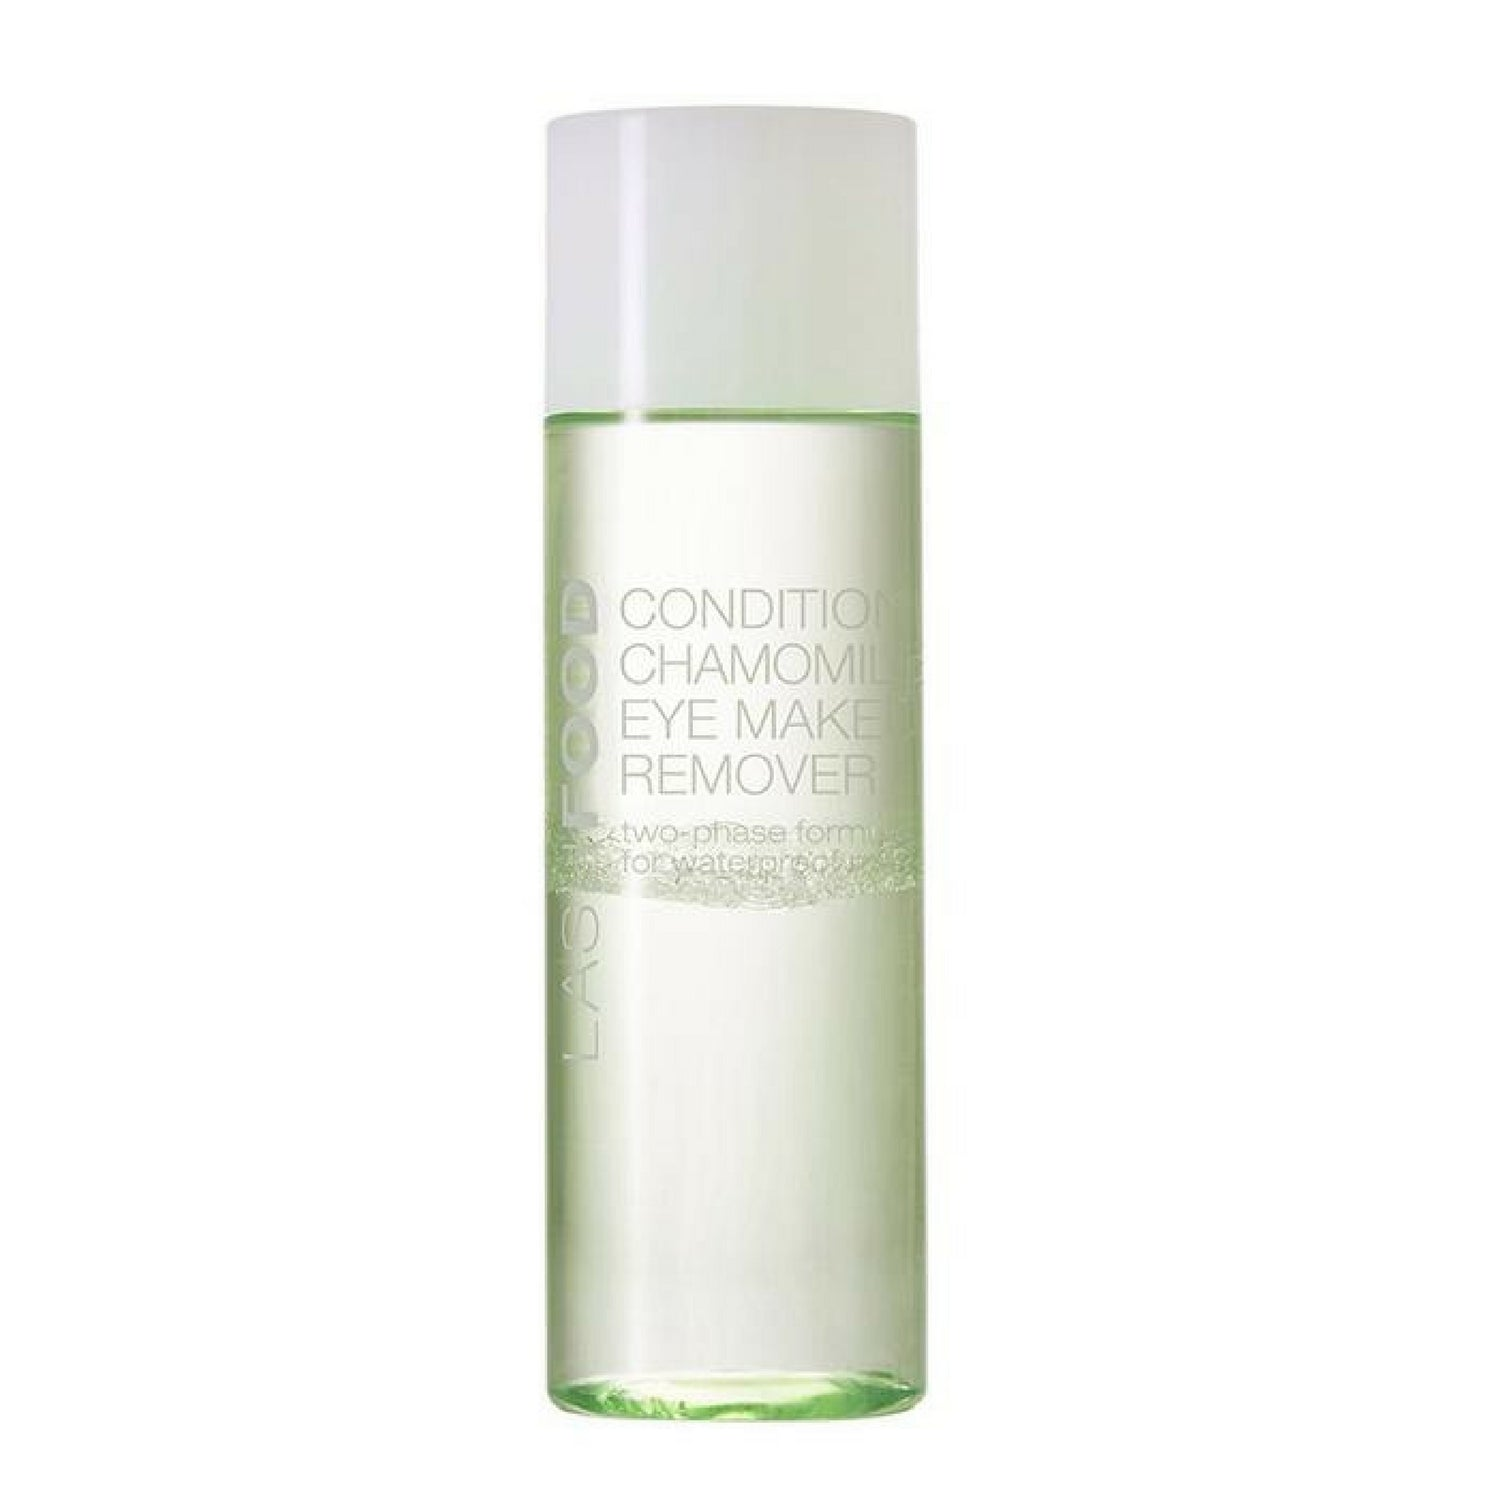 lashfood.com - Conditioning Chamomile Eye Makeup Remover